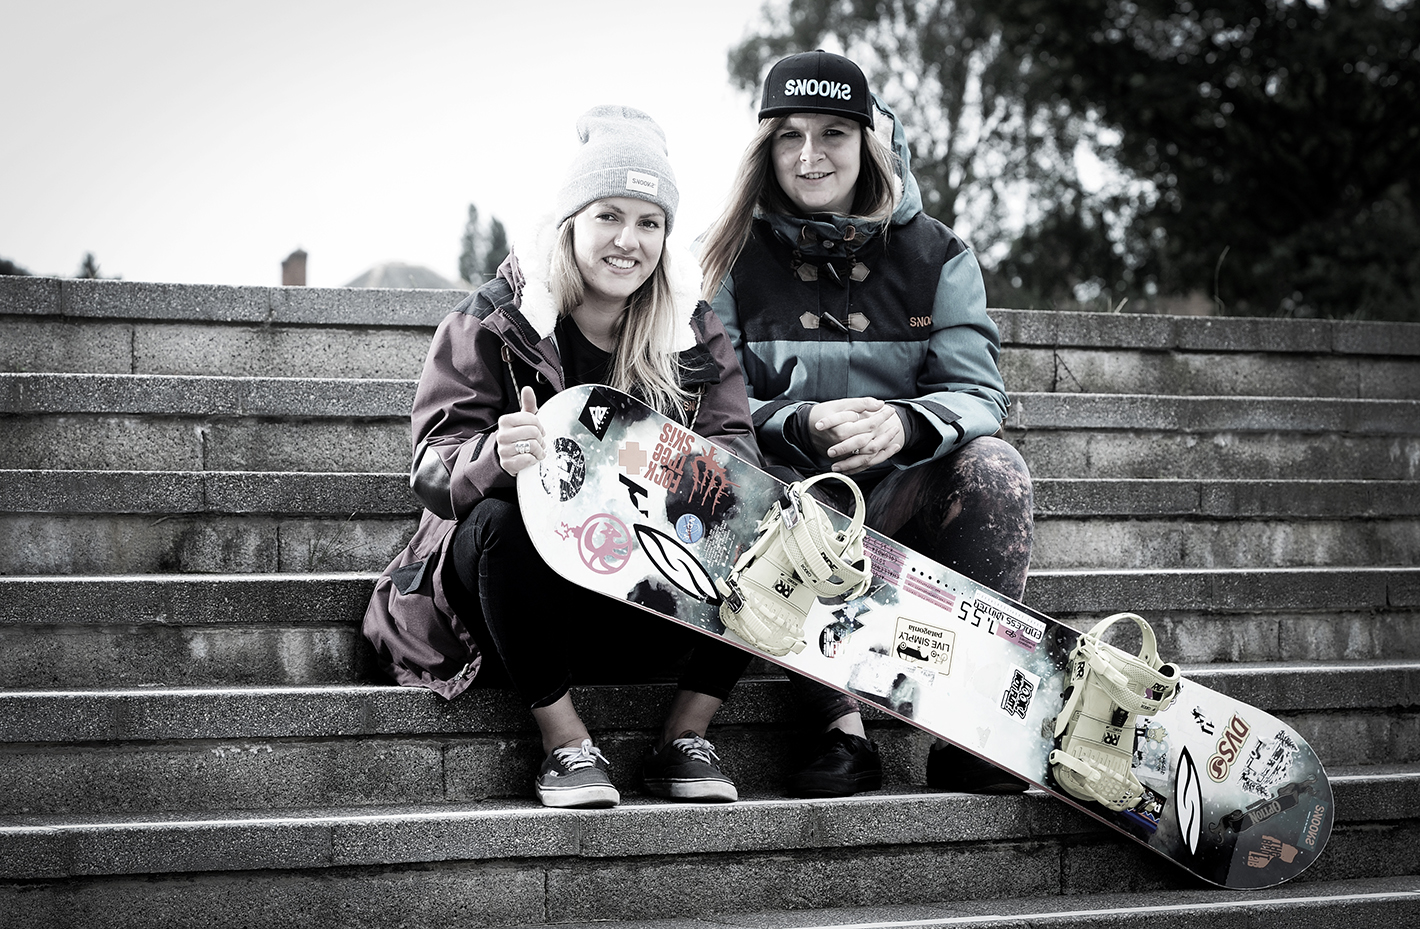 PICTURES COPYRIGHTED TO Beth Walsh photography [contact Beth on 07888753521] Business Magazine: Sophie Kelly and Susie Beere founders of Snooks a snowboarding and Skiing company in Loughborough